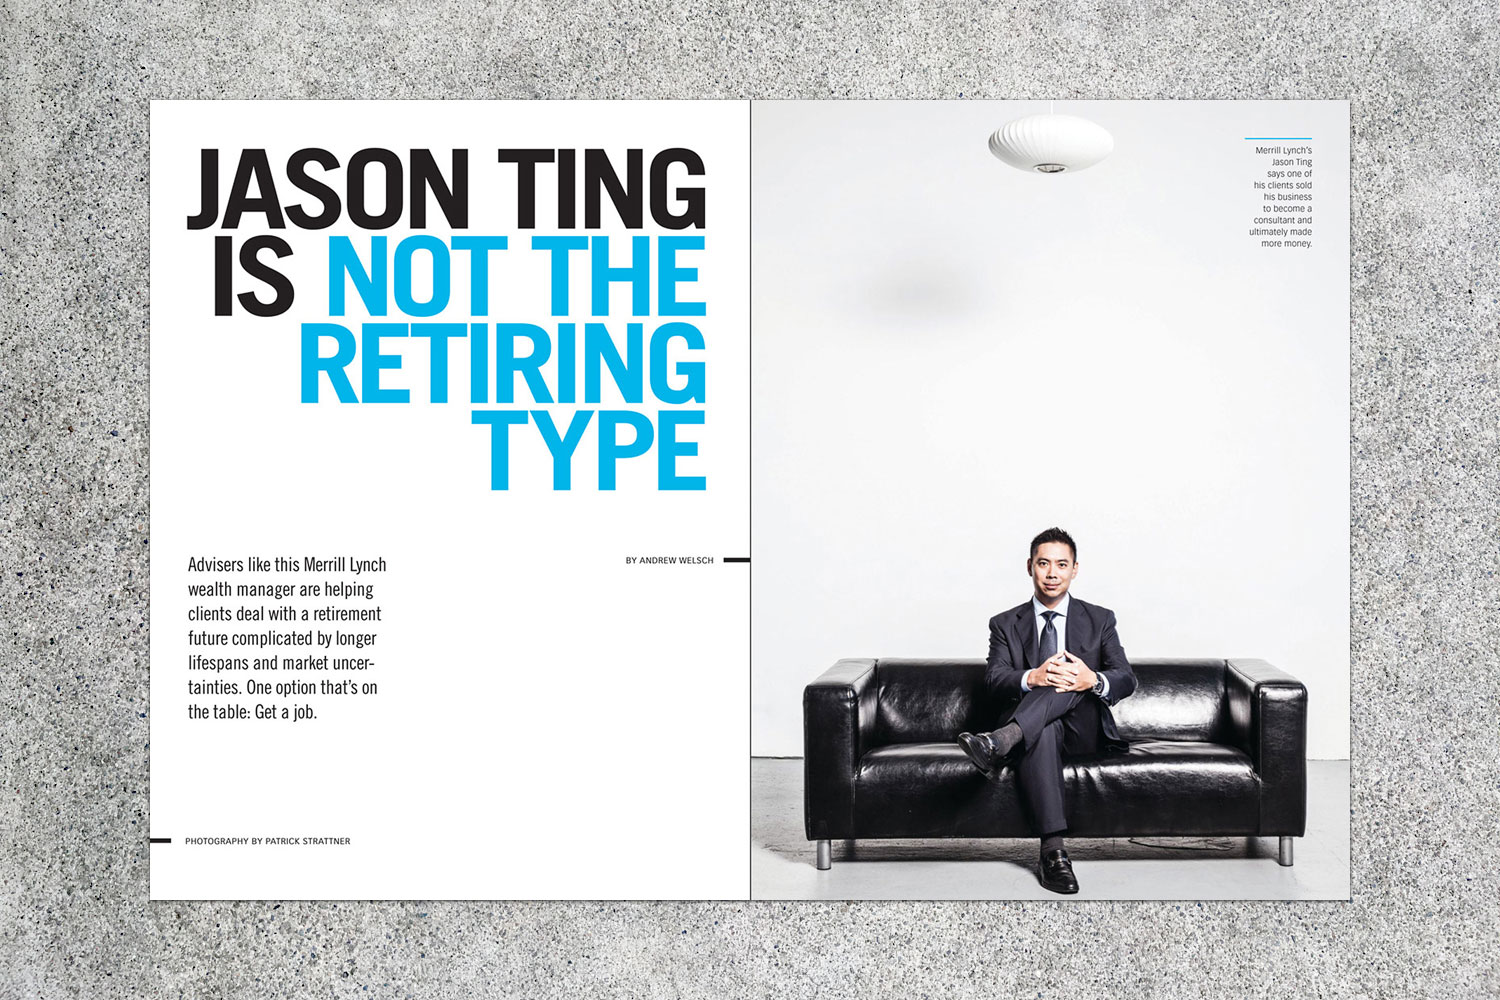 PATRICK STRATTNER PHOTOGRAPHY | TEAR SHEETS | Jason Ting / On Wall Street